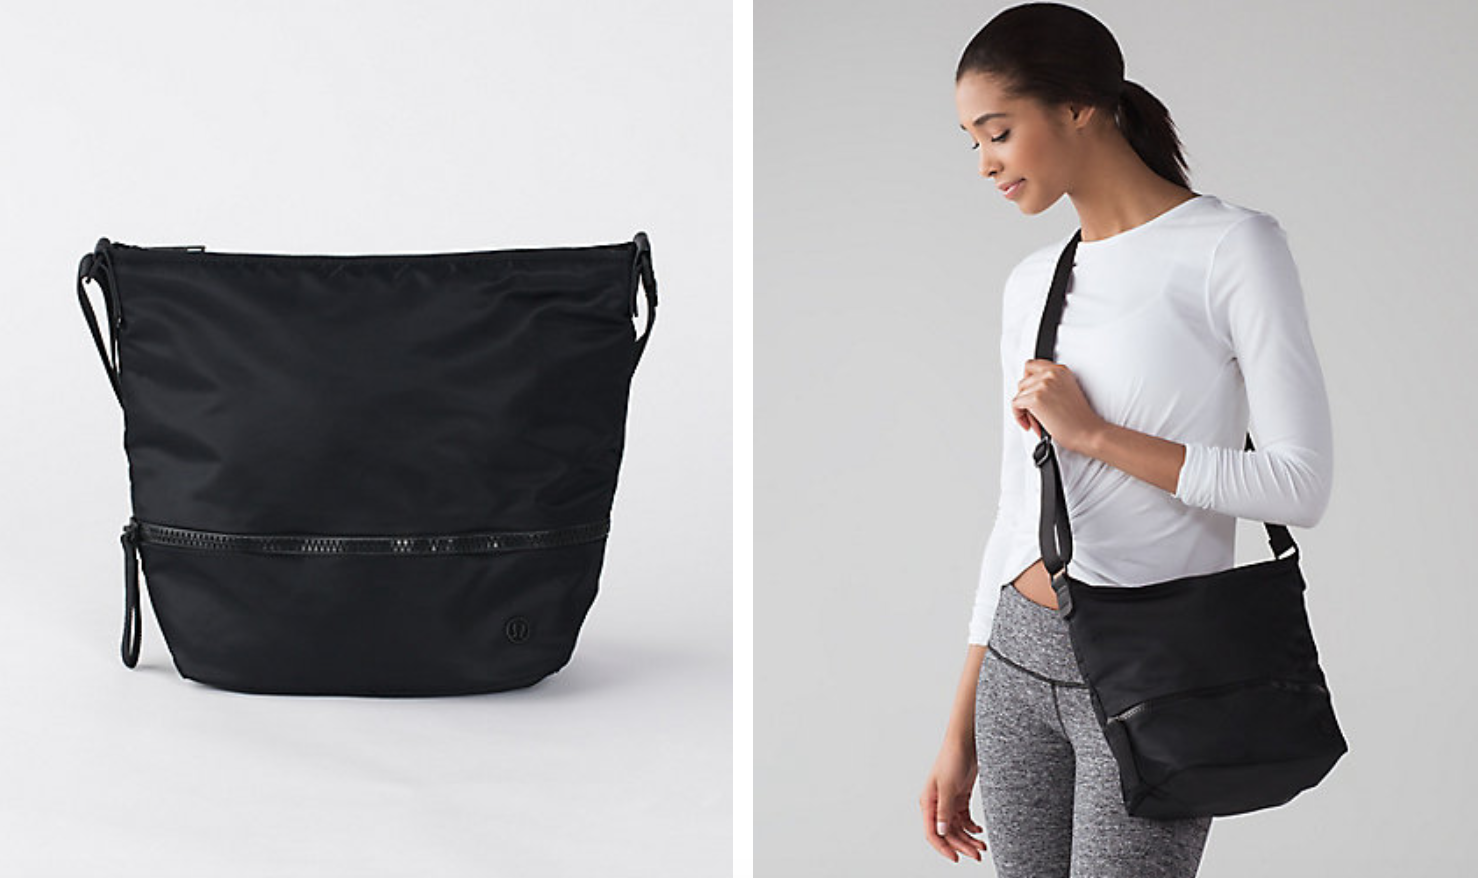 https://api.shopstyle.com/action/apiVisitRetailer?url=https%3A%2F%2Fshop.lululemon.com%2Fp%2Fbags%2FGo-Lightly-Shoulder-Bag%2F_%2Fprod8430924%3Frcnt%3D70%26N%3D1z13ziiZ7vf%26cnt%3D76%26color%3DLW9AJ9S_028694&site=www.shopstyle.ca&pid=uid6784-25288972-7